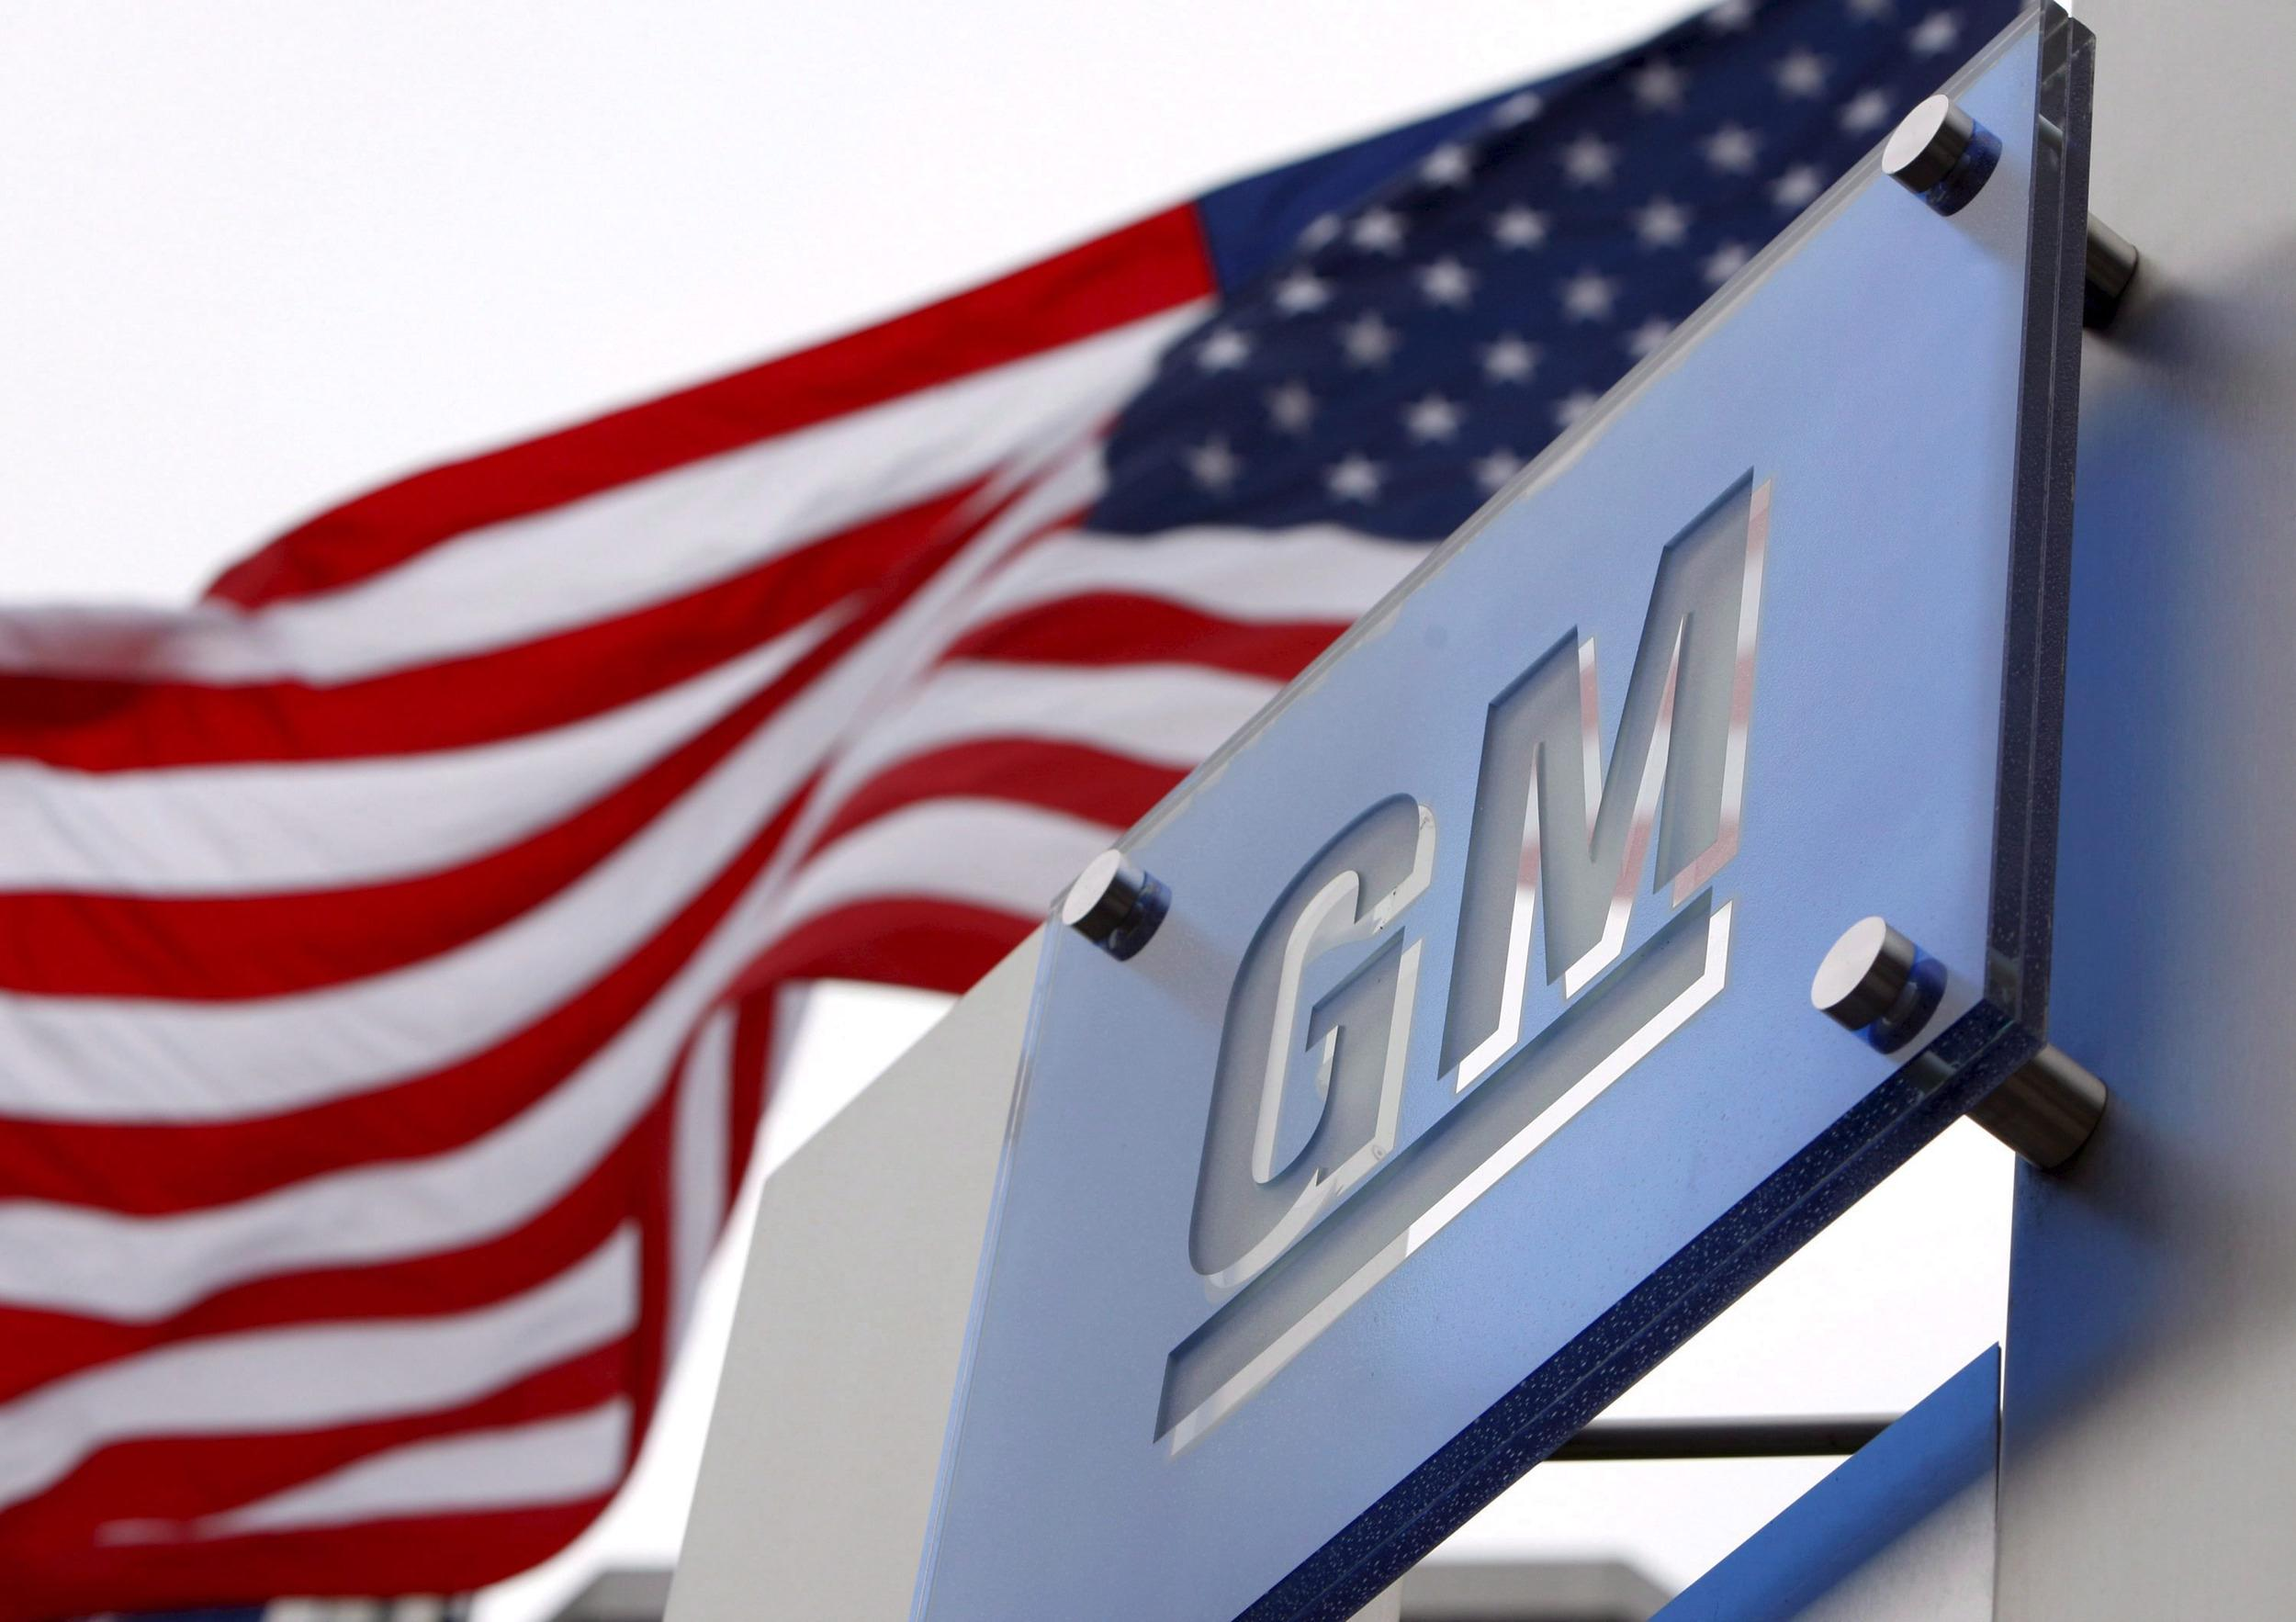 Though General Motors is one of the Big Three American automakers, much of the company's manufacturing takes place in foreign countries. As is the case with several other large American companies, however, GM has started bringing some of its foreign manufacturing back to the United States.  In the spring of last year, the company announced its intention to halt production of the Chevrolet Camaro at an assembly plant in Ontario, Canada and relocate production to a plant in Lansing, Michigan. The move shifted hundreds of jobs back to the U.S. GM has also been busy moving jobs out of Mexico. In 2014, the company announced it would move manufacturing of the Cadillac SRX to Spring Hill, Tennessee, from a factory in Mexico.